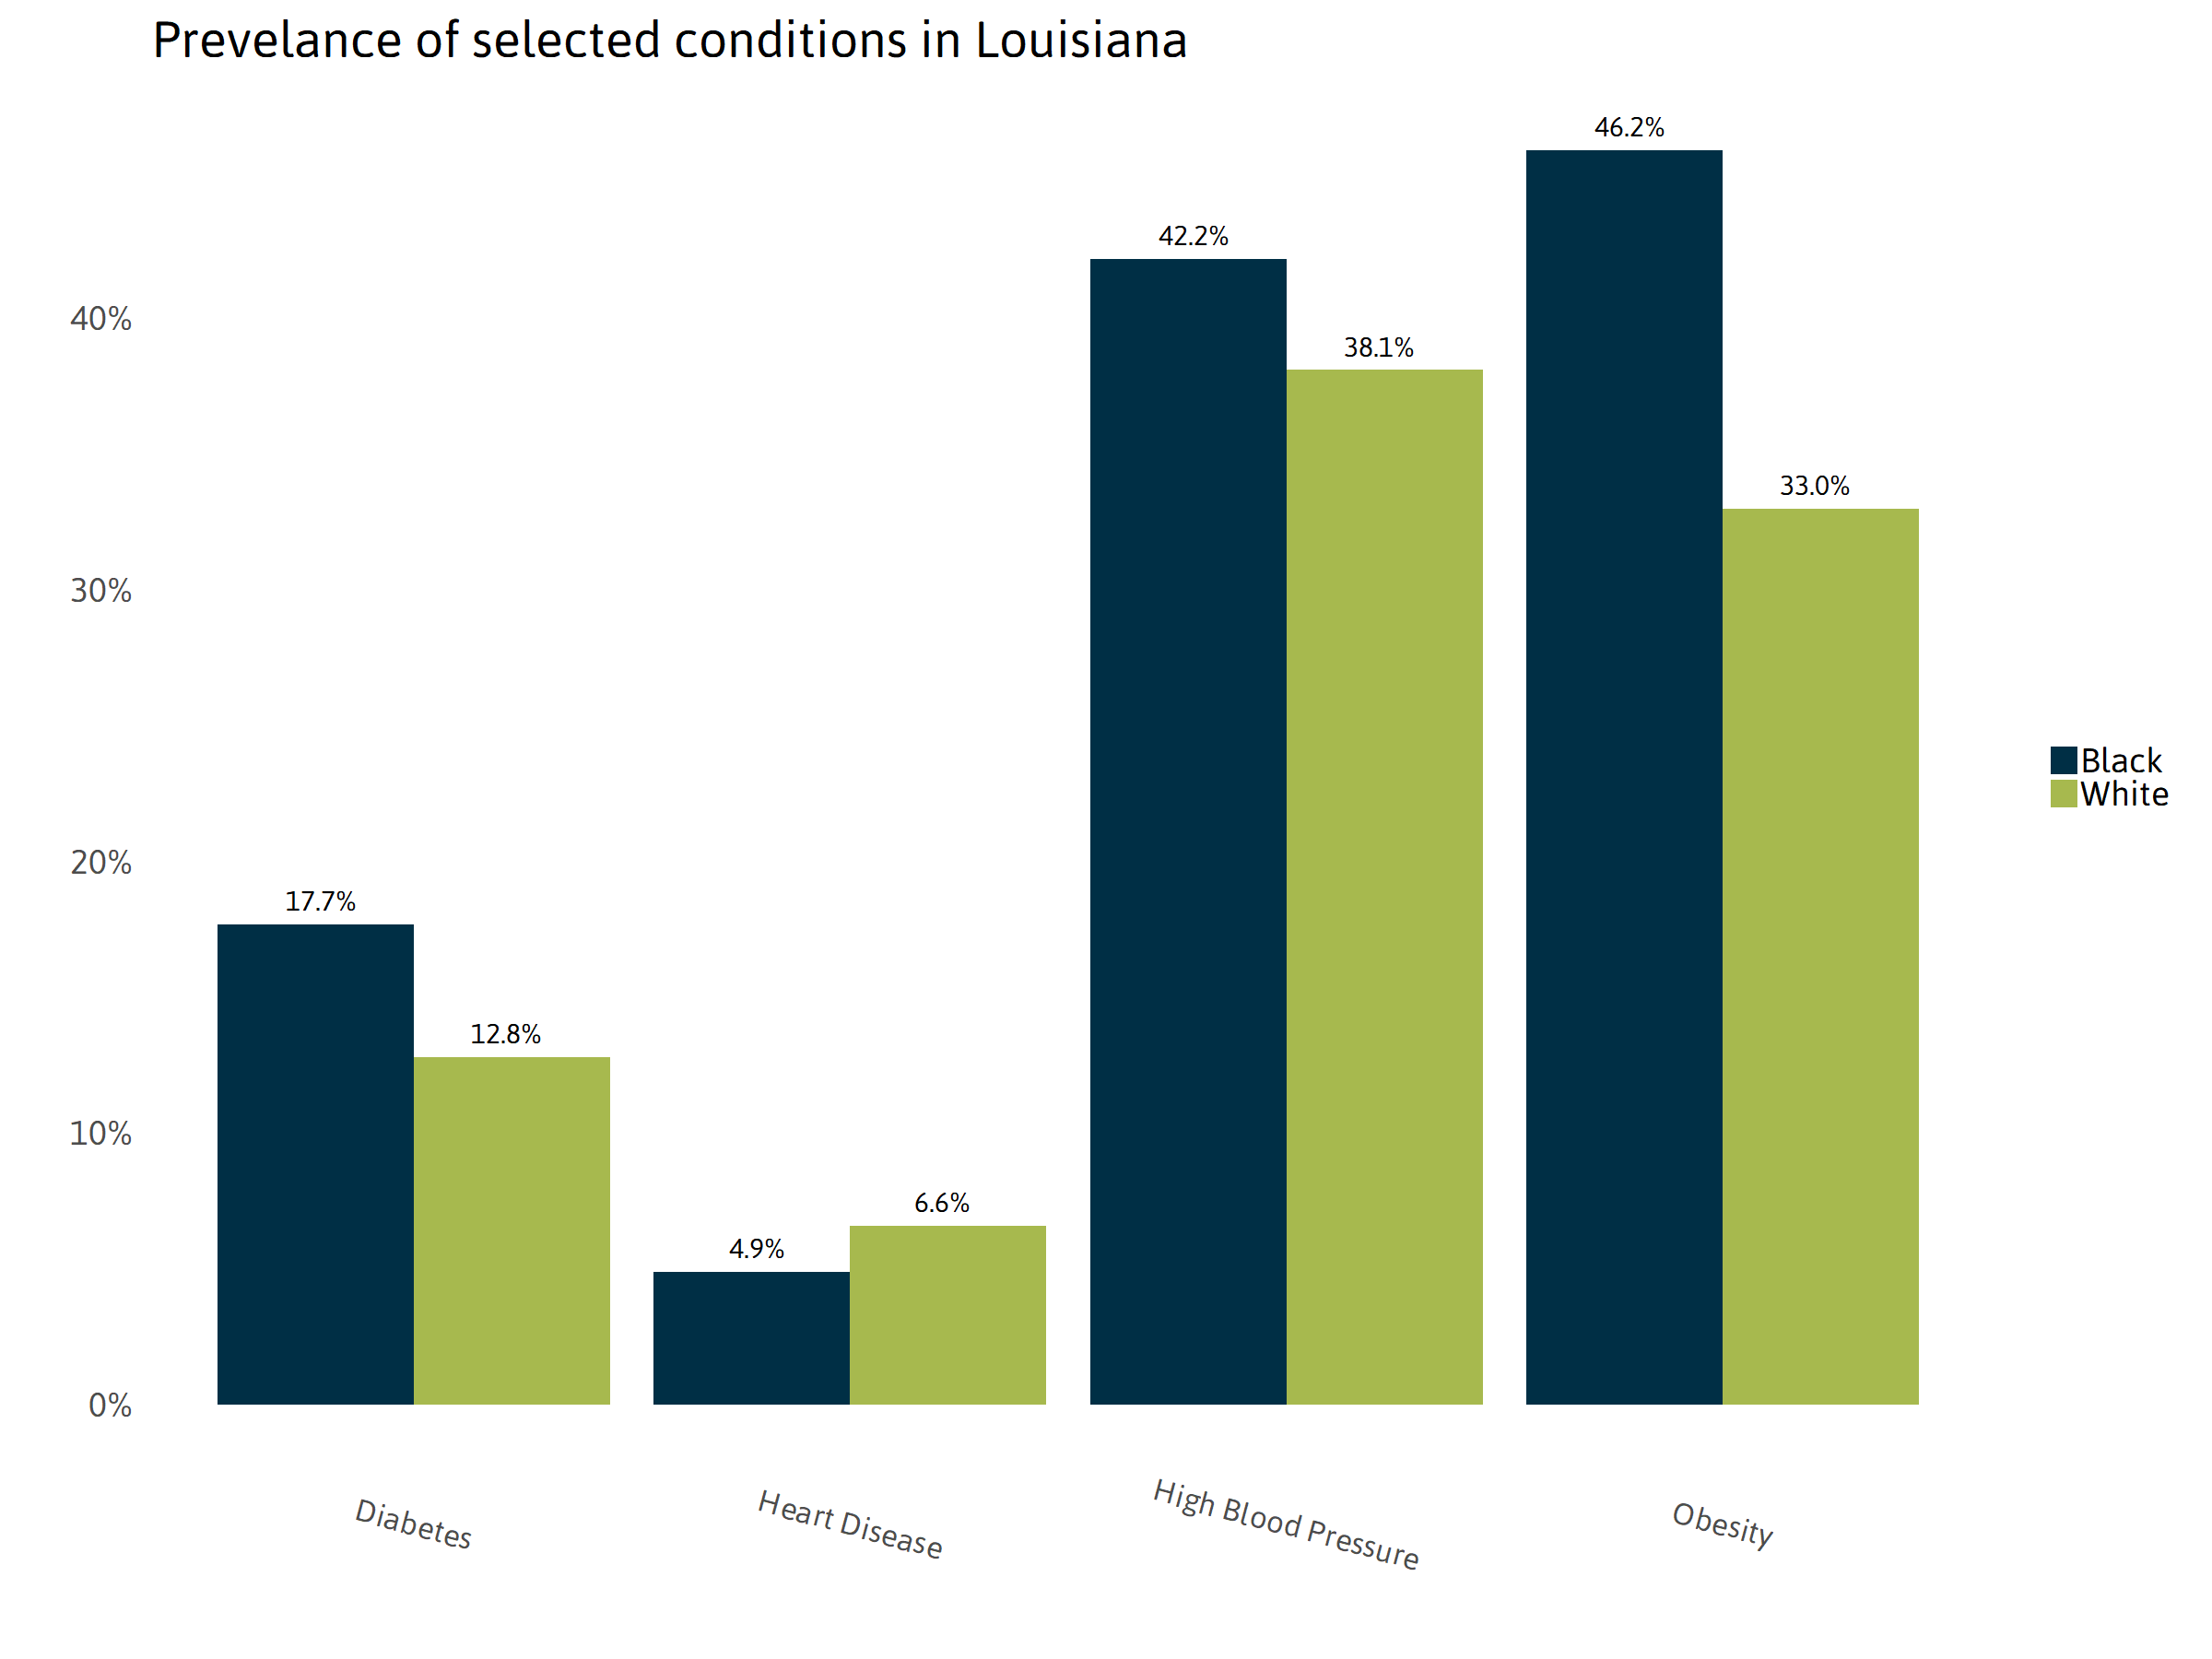 Prevalence of Selected Conditions in Louisiana